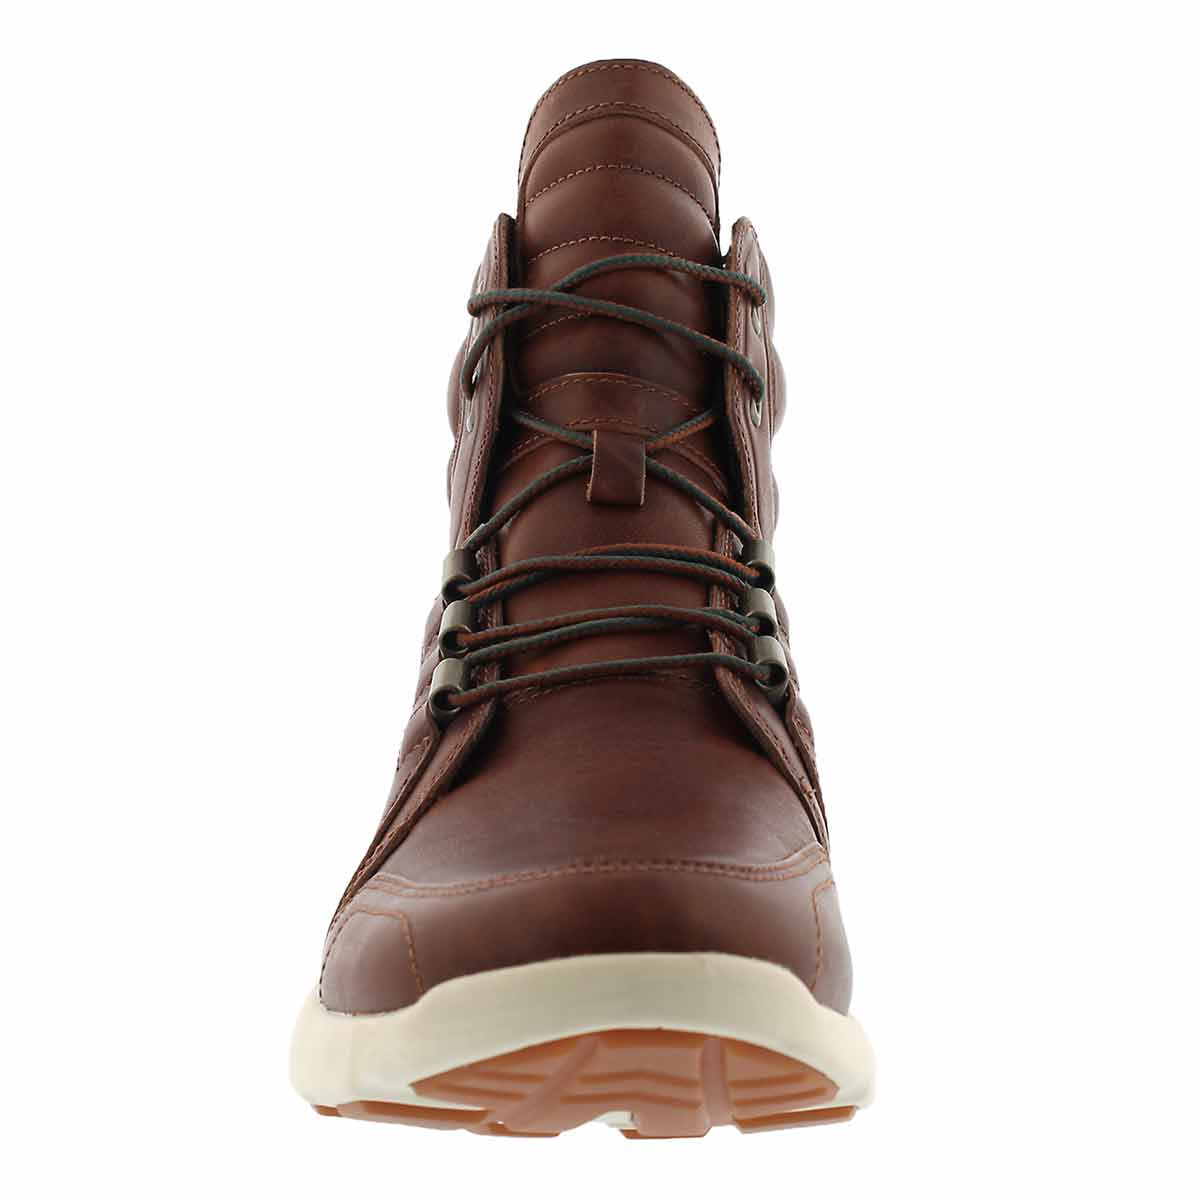 Mns Fly Roam brown casual ankle boot